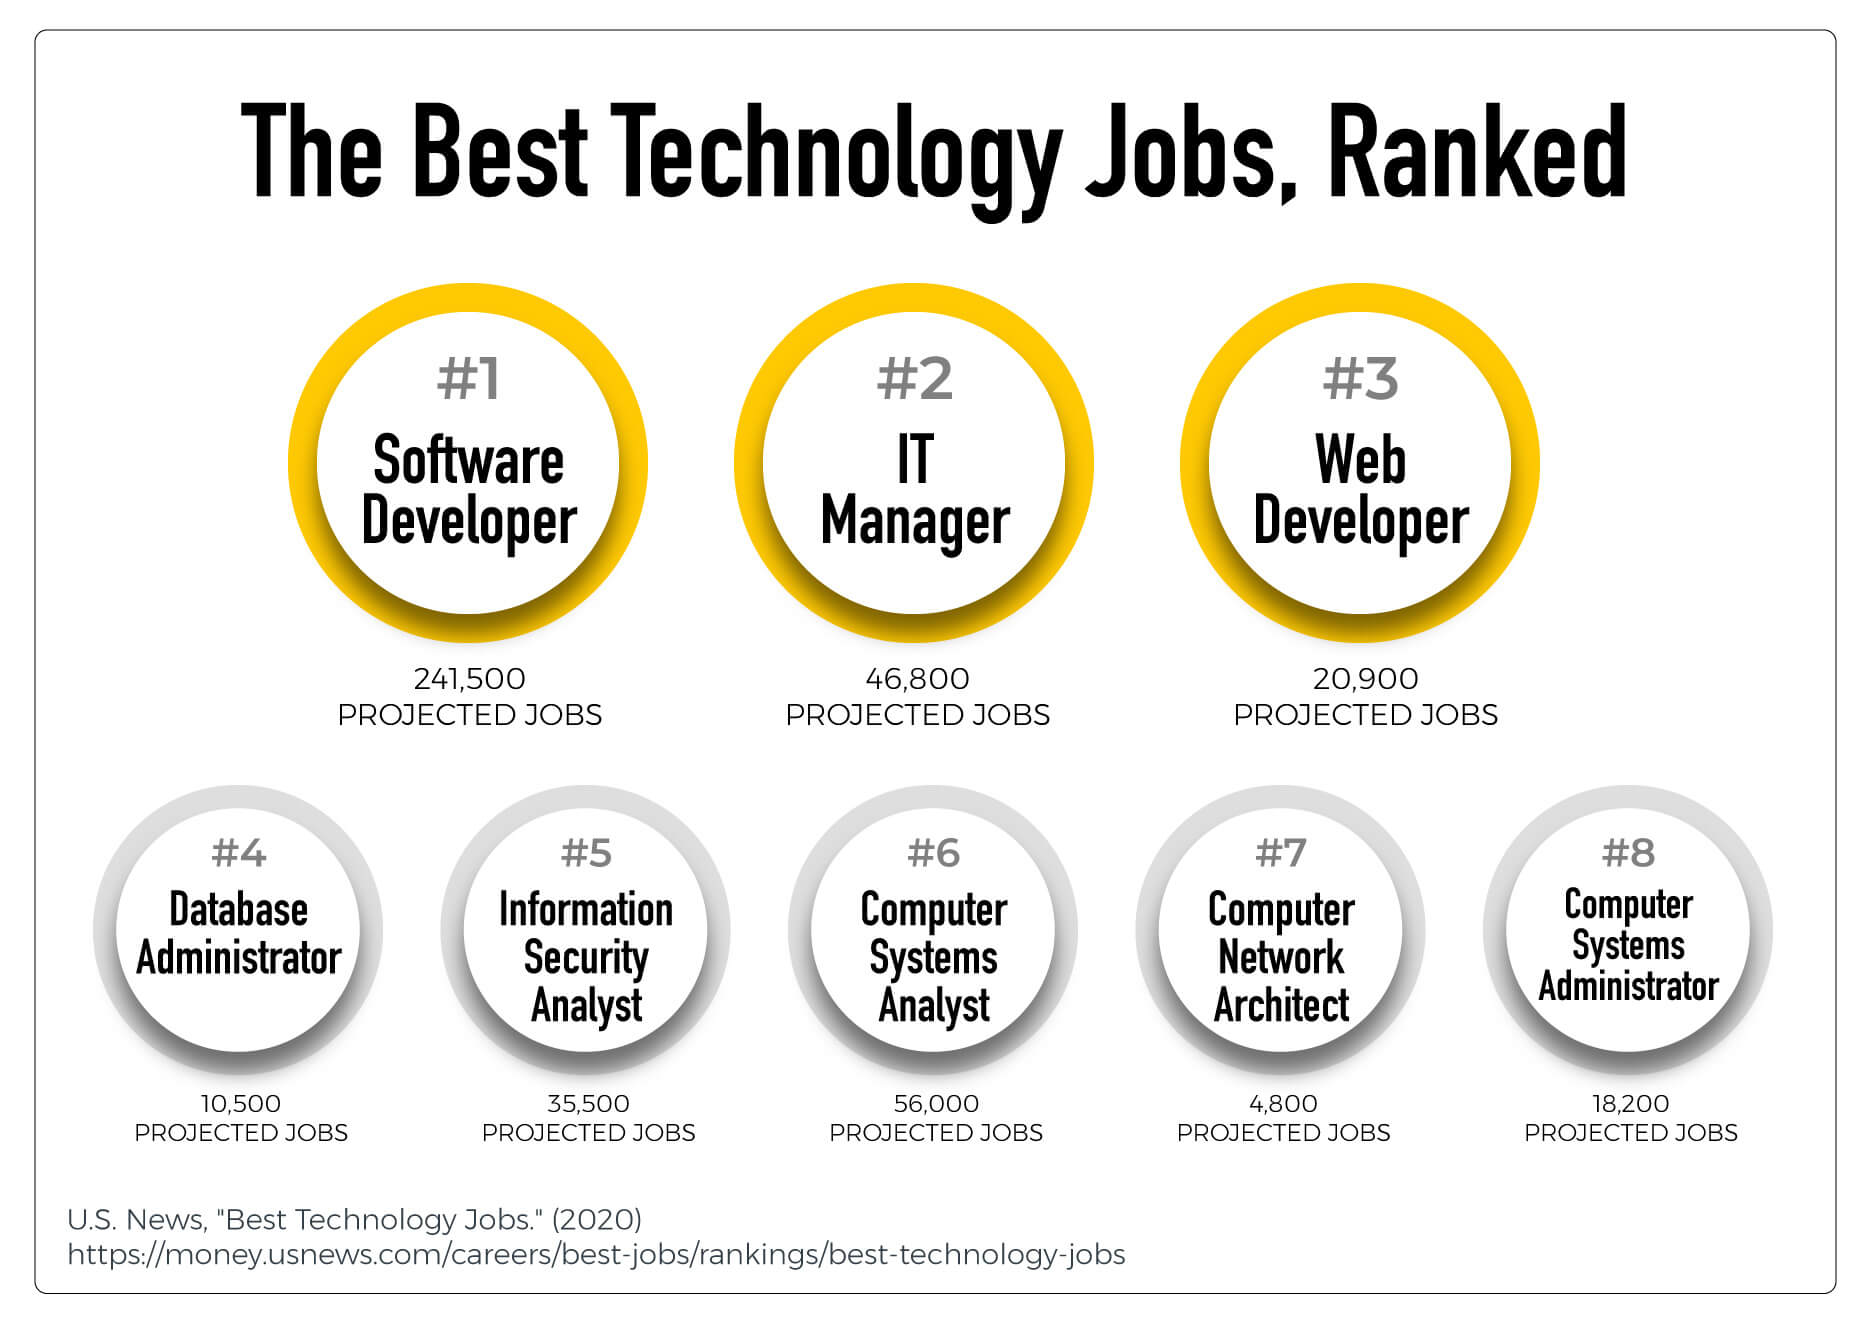 A list of the best ranked technology jobs